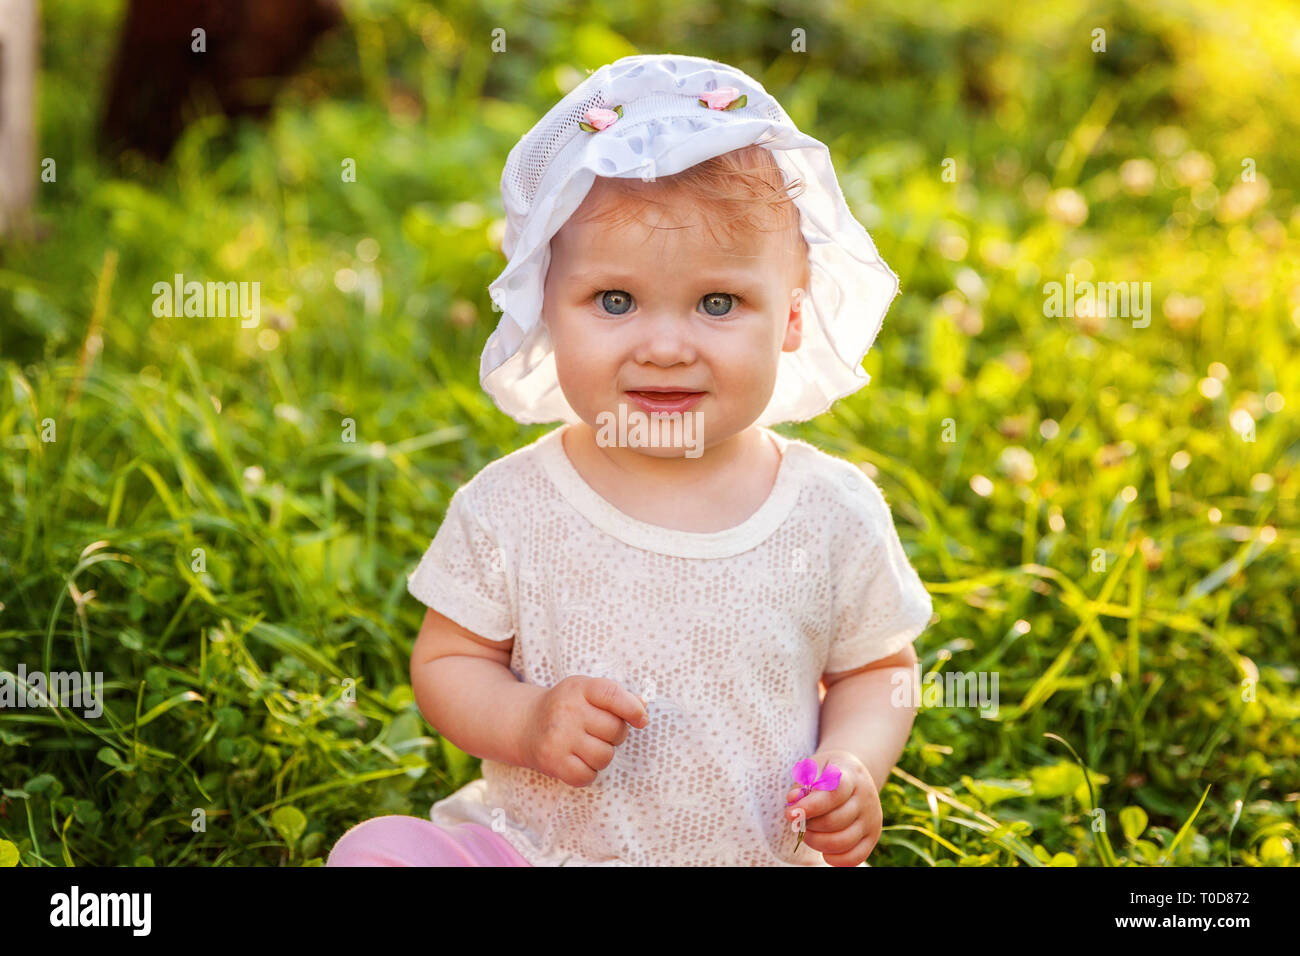 Sweet happy little baby girl sitting on grass in park, garden, meadow. Laughing, happiness, enjoying fresh air in forrest in sunny summer day. Portrai Stock Photo